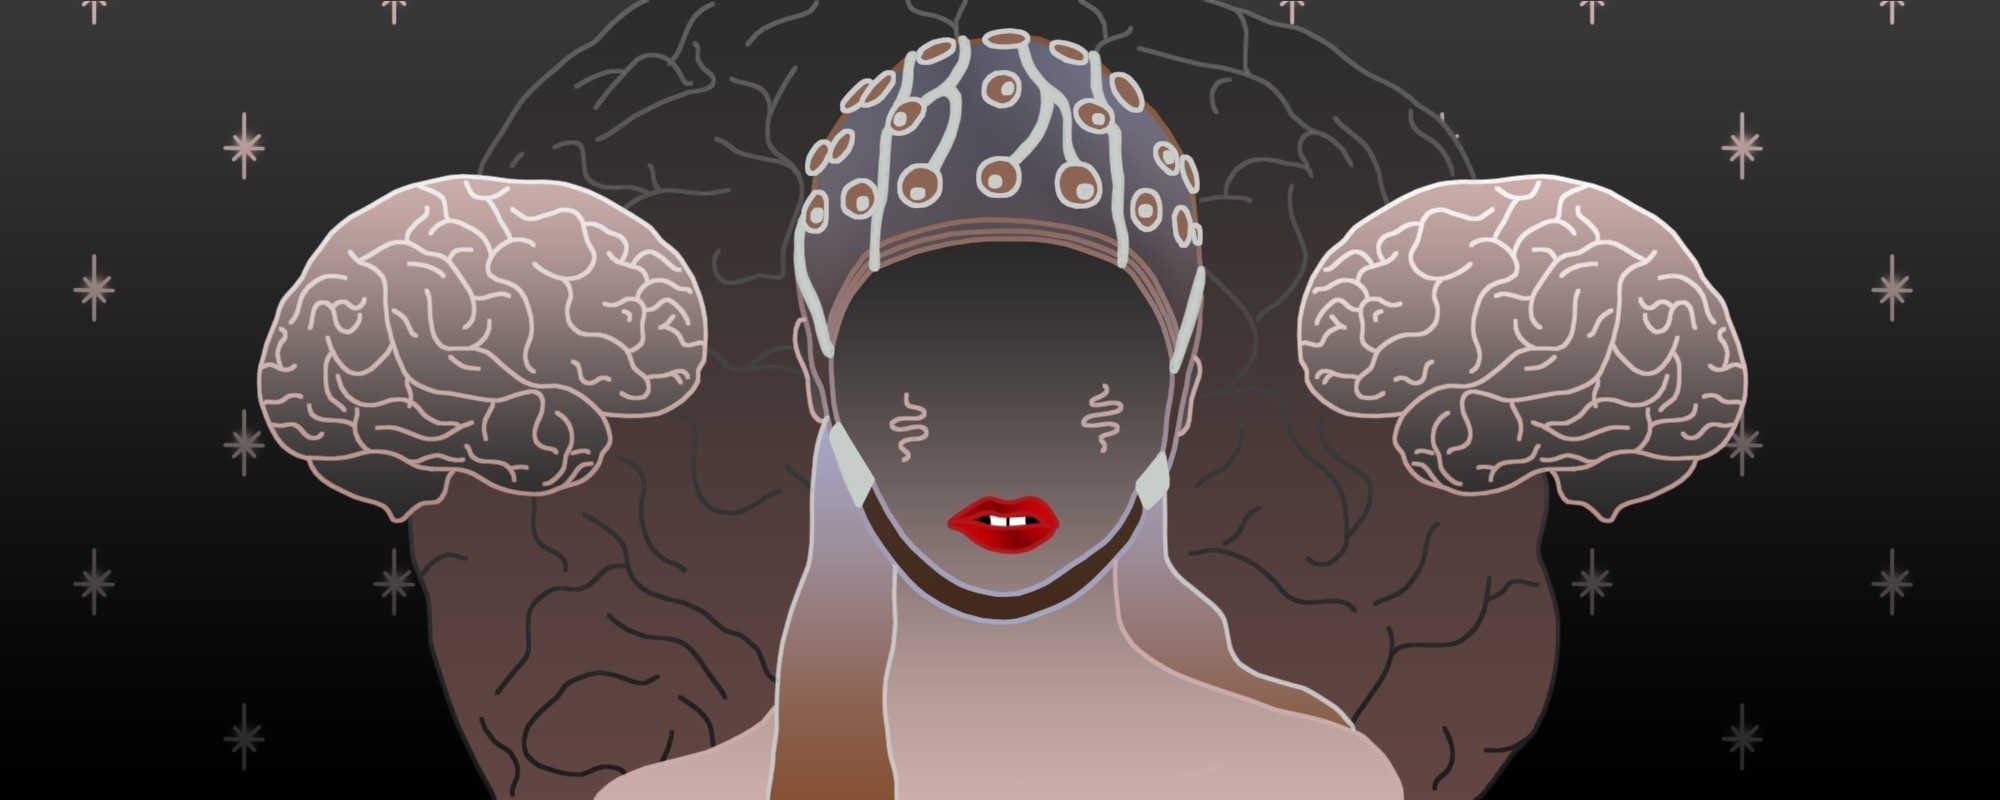 Electroceuticals: the Shocking Future of Brain Zapping